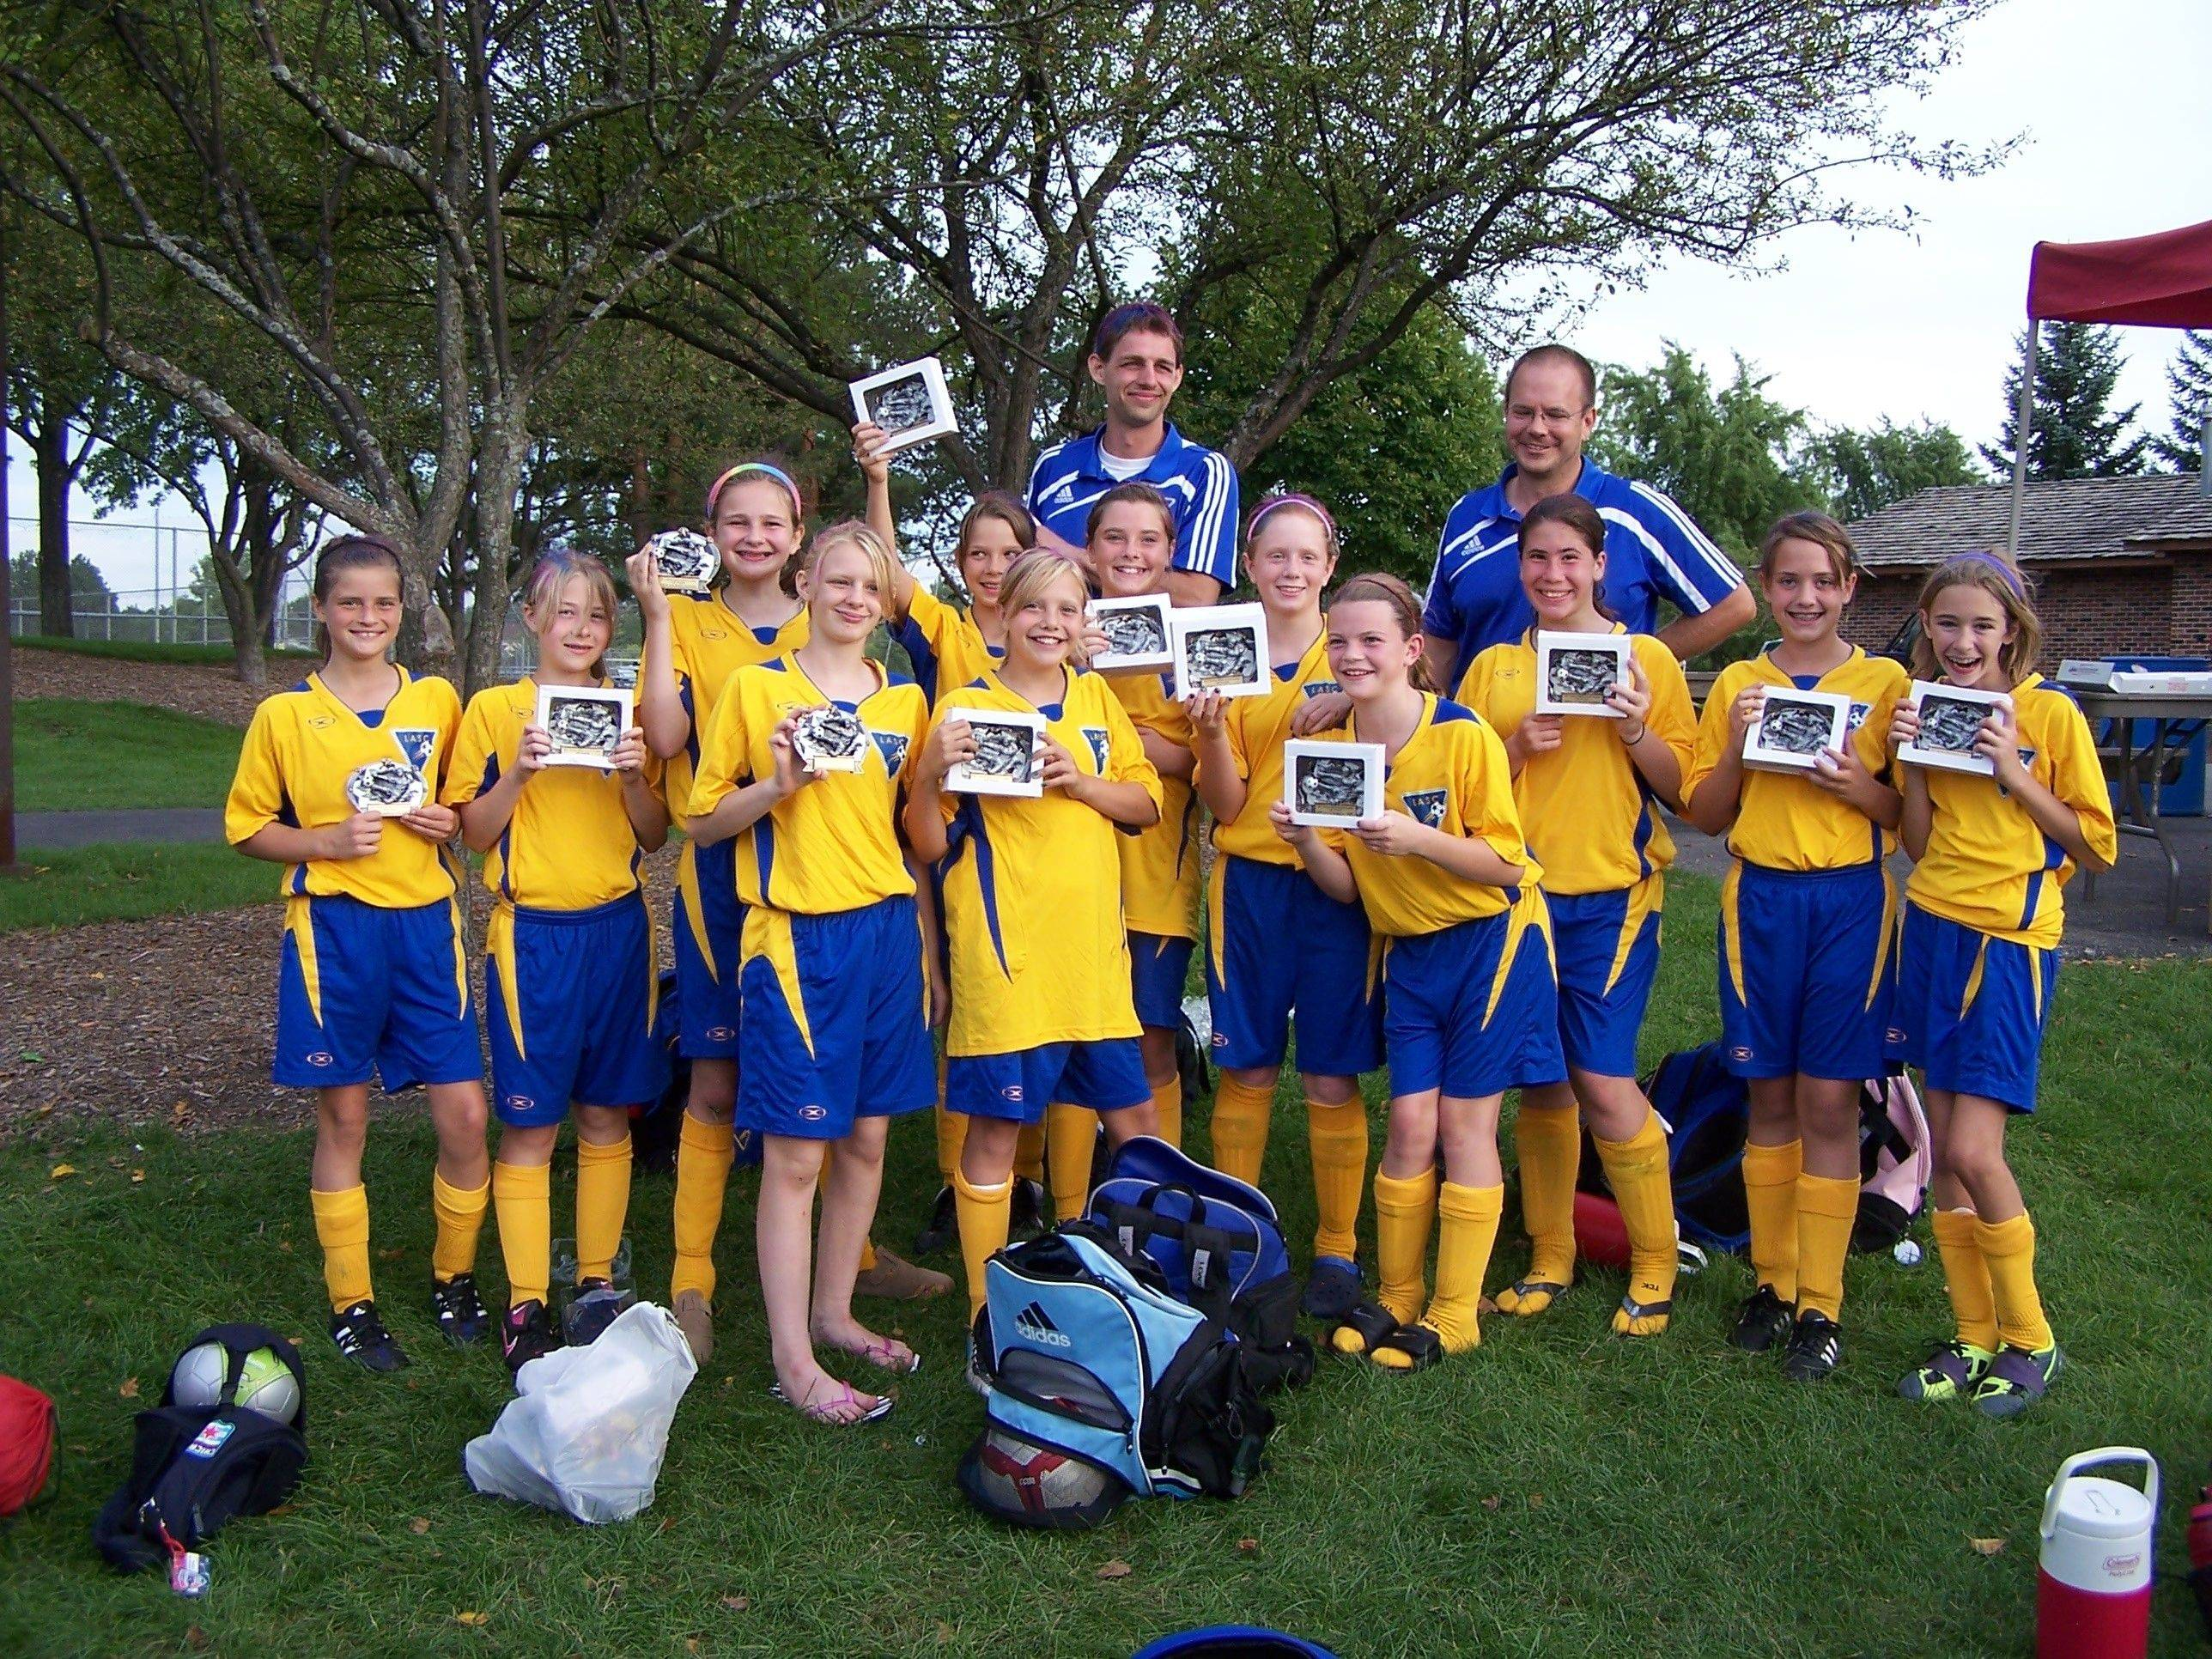 The LASC Twisters Blue squad recently won in the Black Division of Buffalo Grove's Kickoff Classic, beating teams from Northbrook, Park Ridge, Arlington Heights and Mount Prospect.